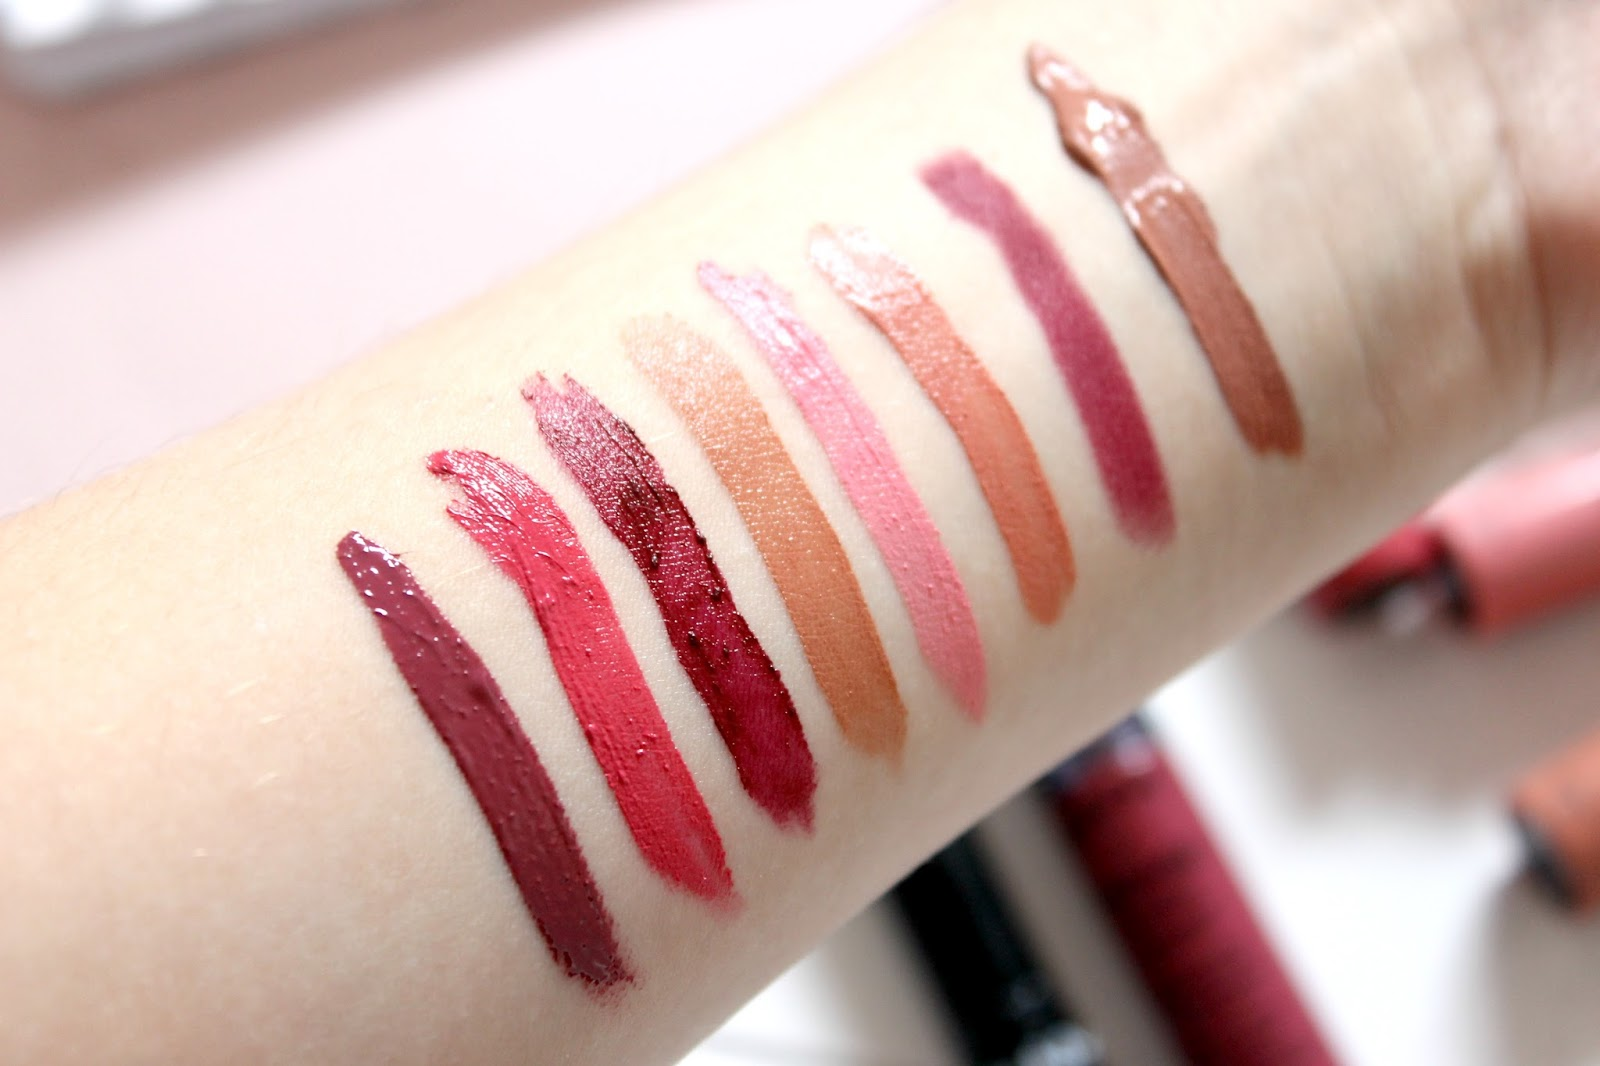 NYX Liquid Lipsticks Swatches